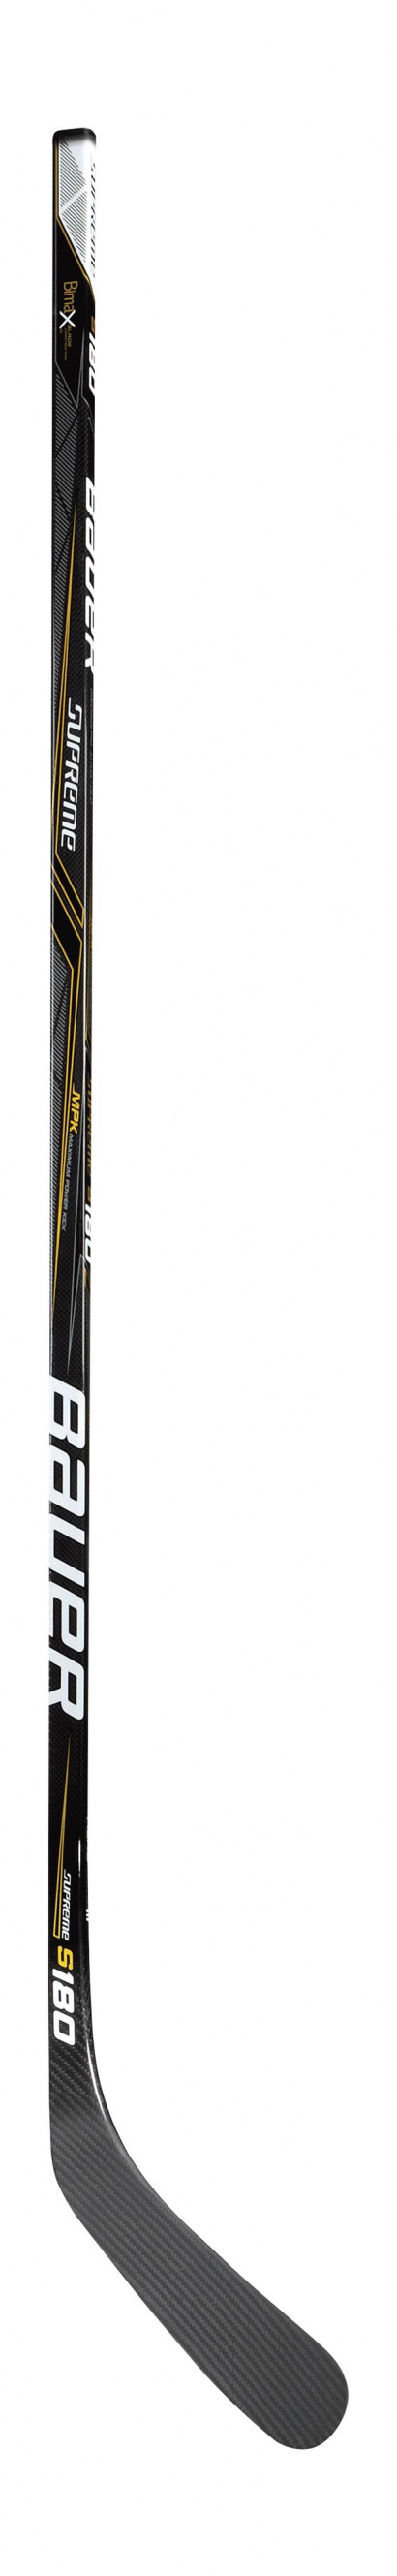 Hockey Stick Bauer SUPREME S180 Grip Sr / Senior 102